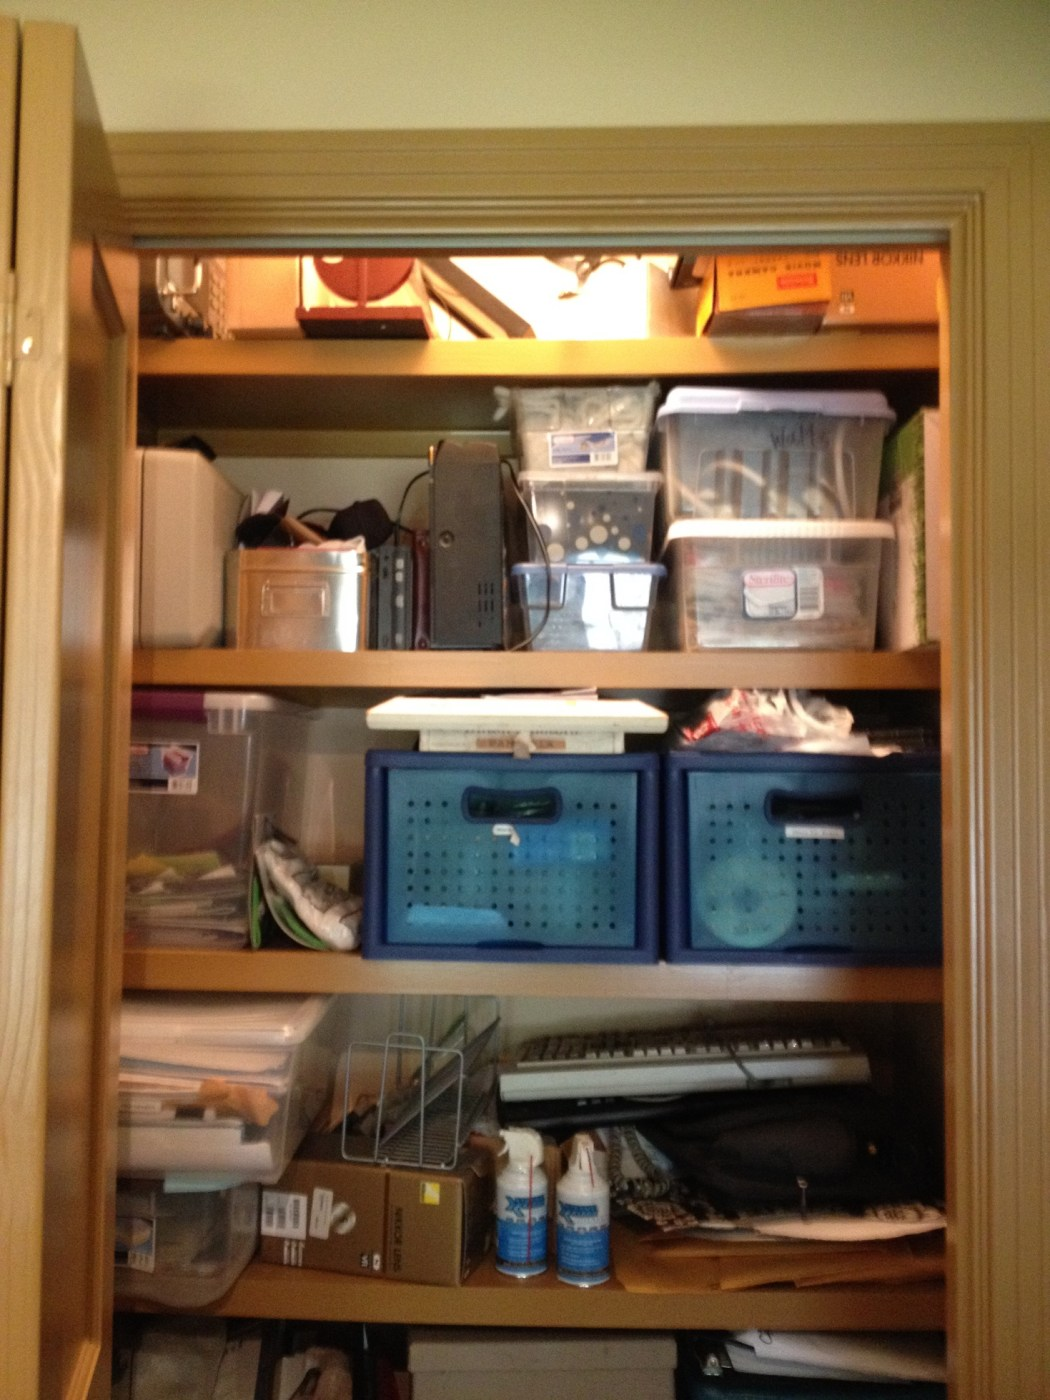 Purging Outdated Technology in a Home Office Closet  - Cluttered Top View of Home Office Closet